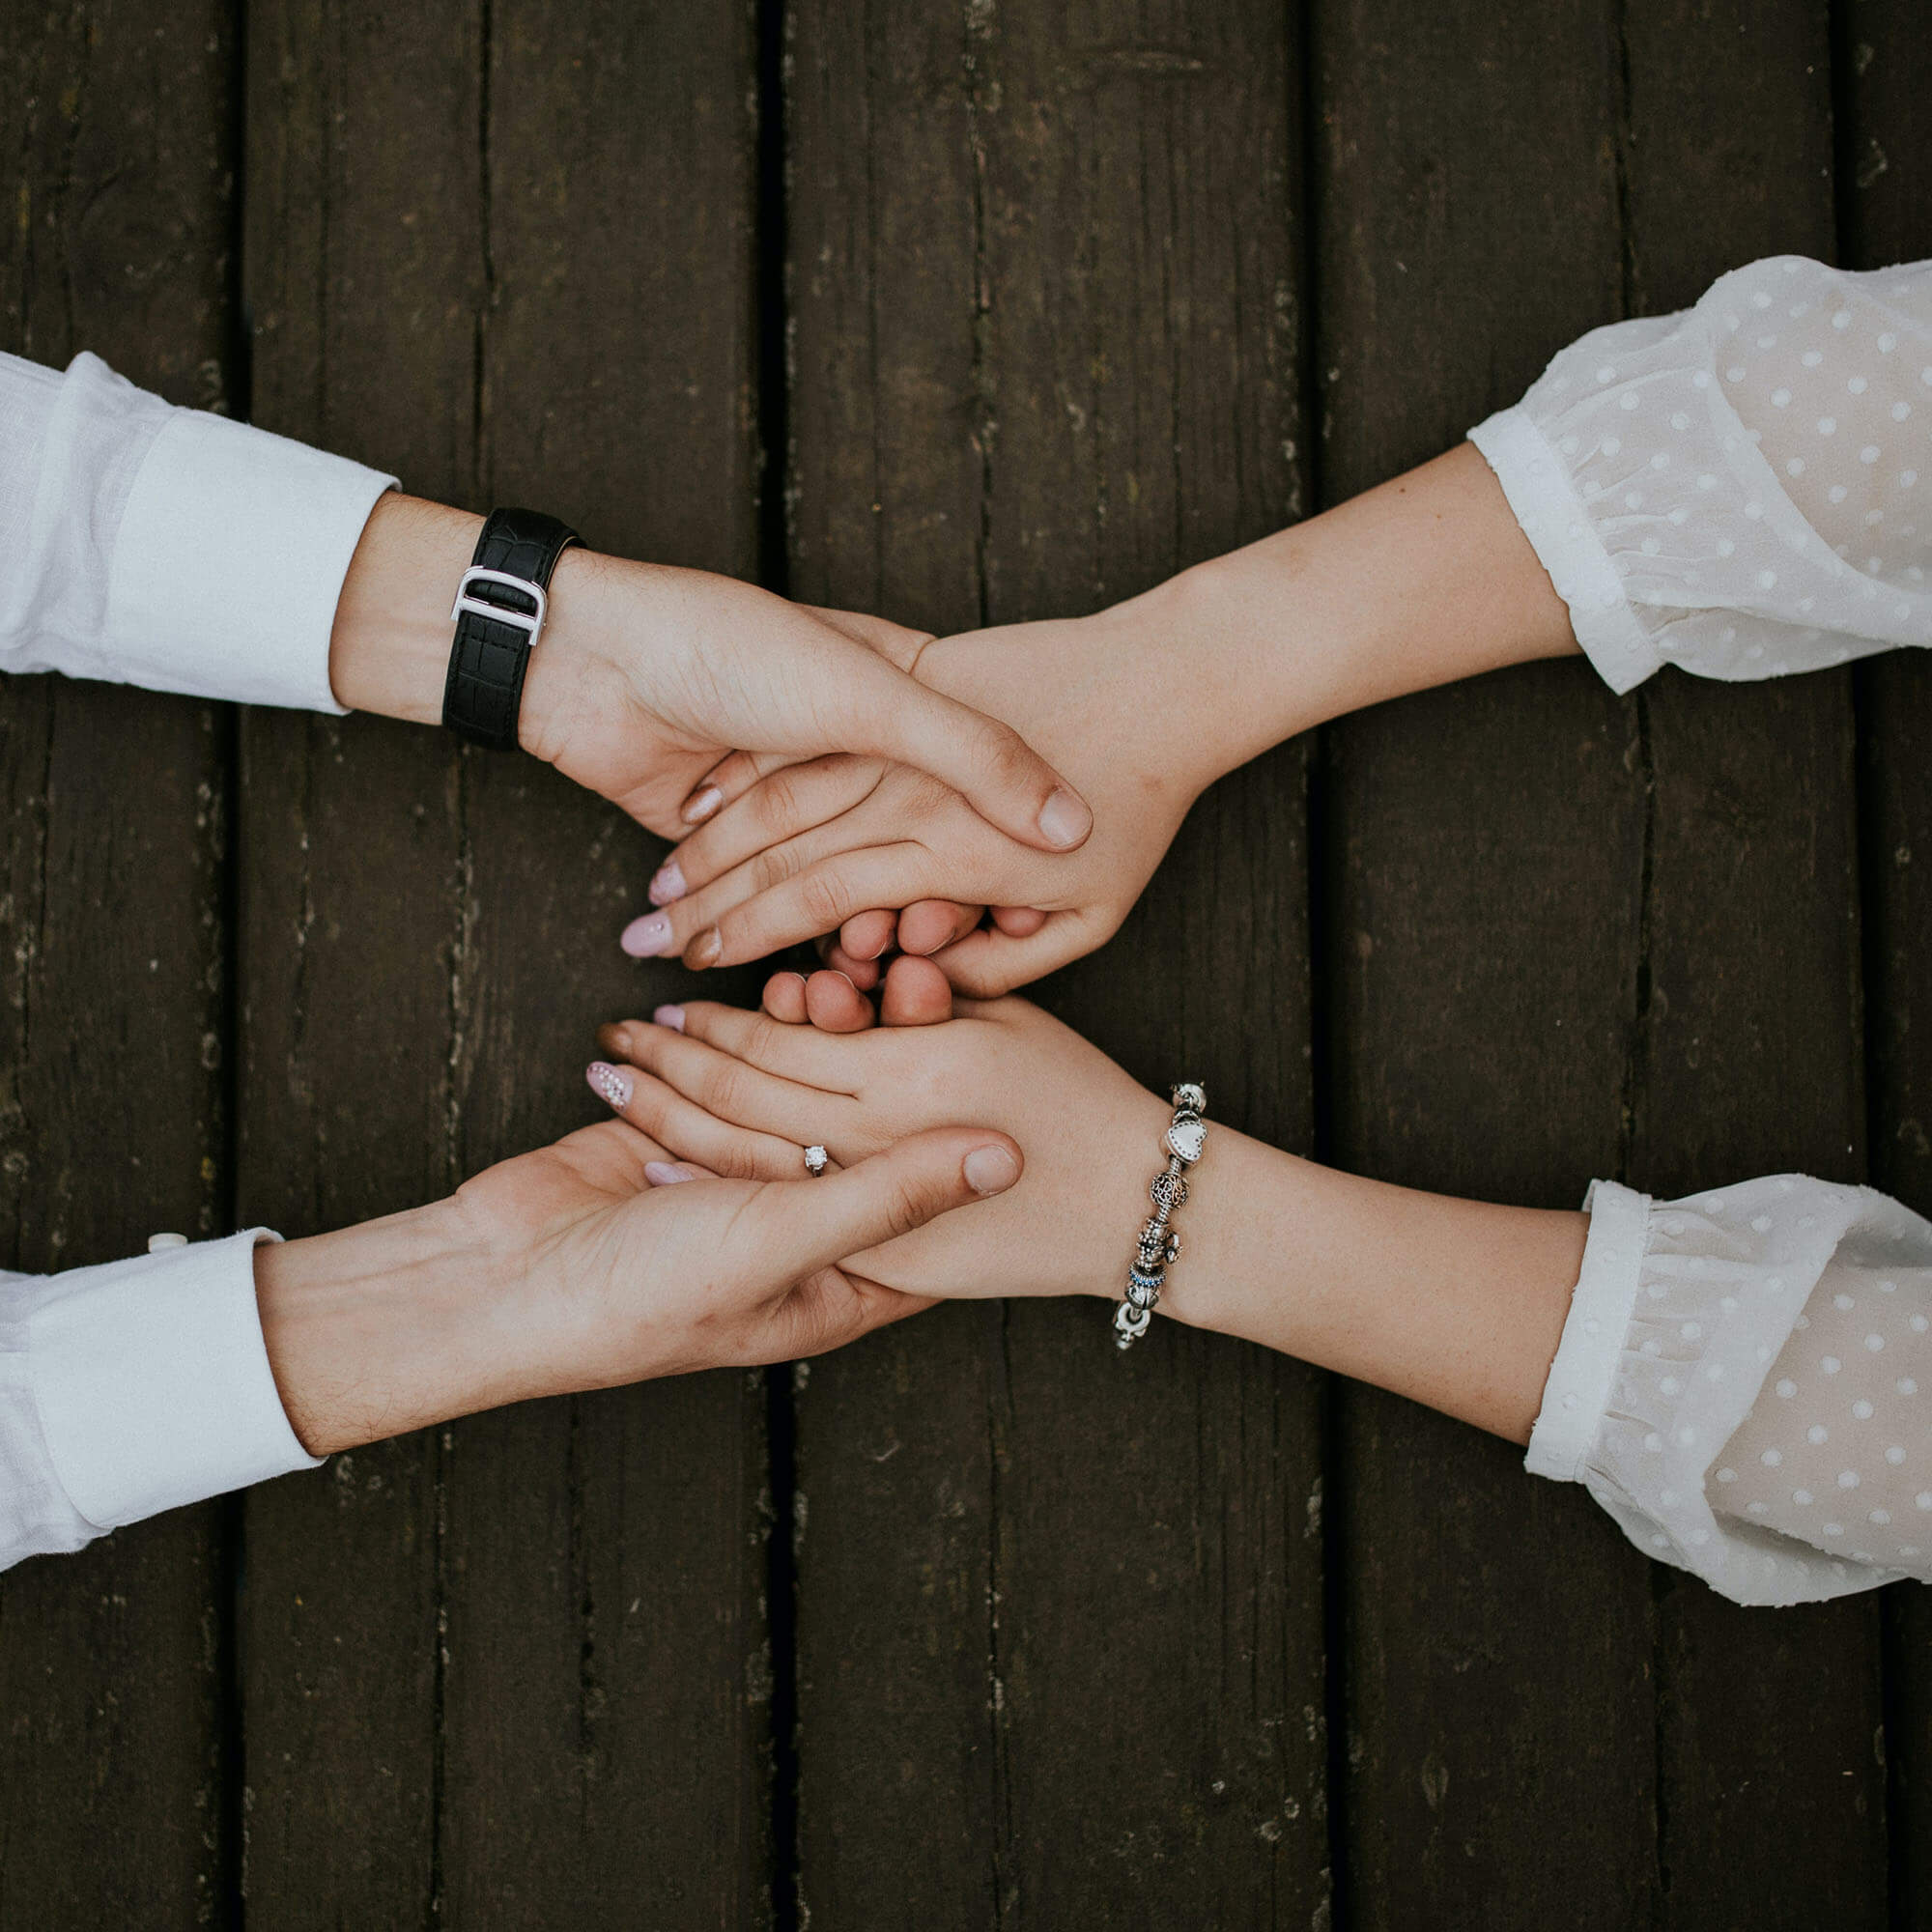 Two pairs of holding hands on top of a wooden table